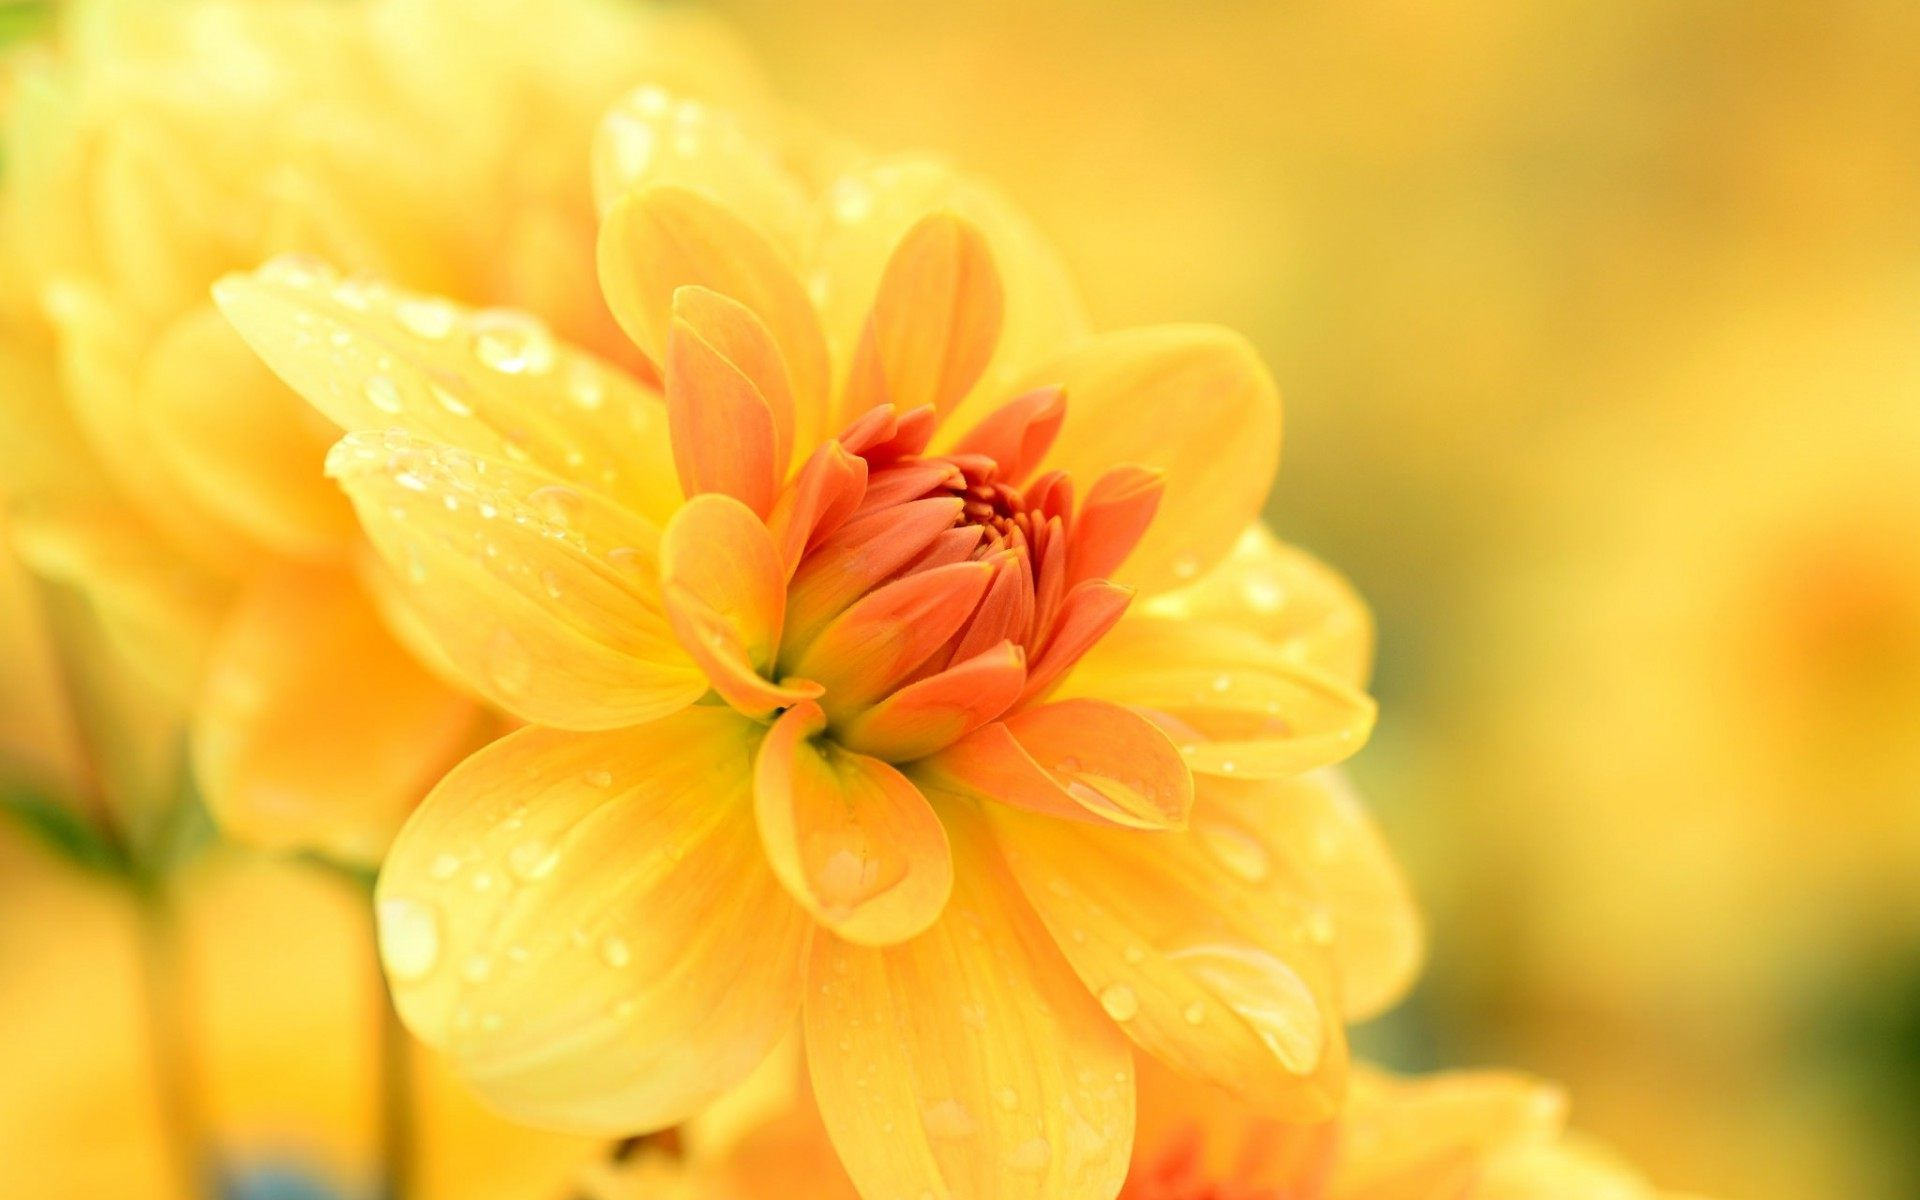 Yellow Flower Photography Wallpaper For Desktop In High Resolution Free Download We Have Best Collection Of Beautiful Flowers Background